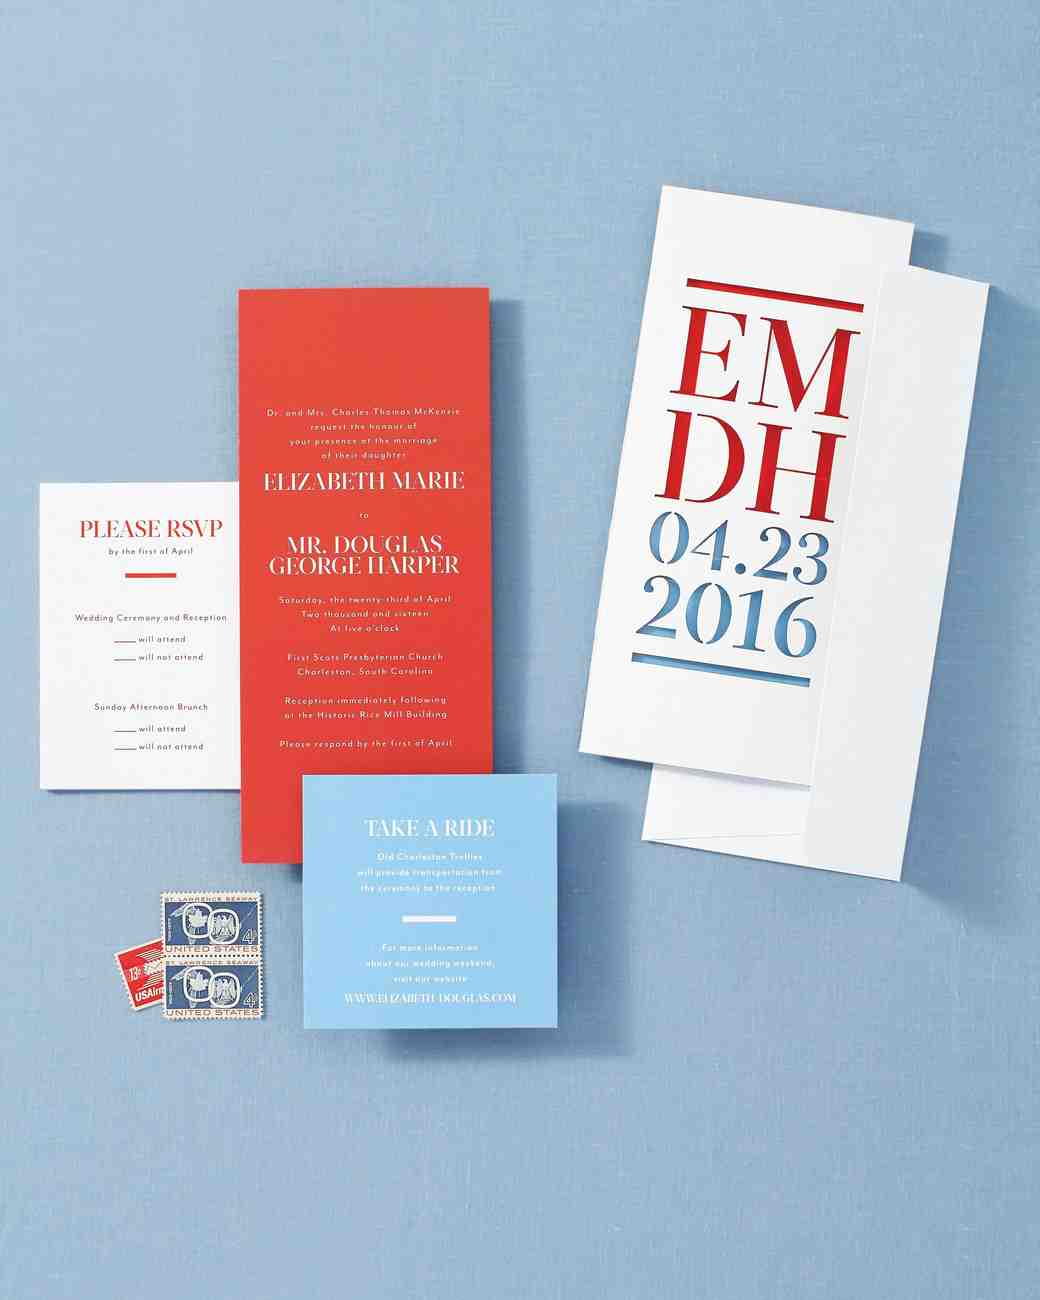 blue-red-wedding-colors-stationery-001-d112667.jpg